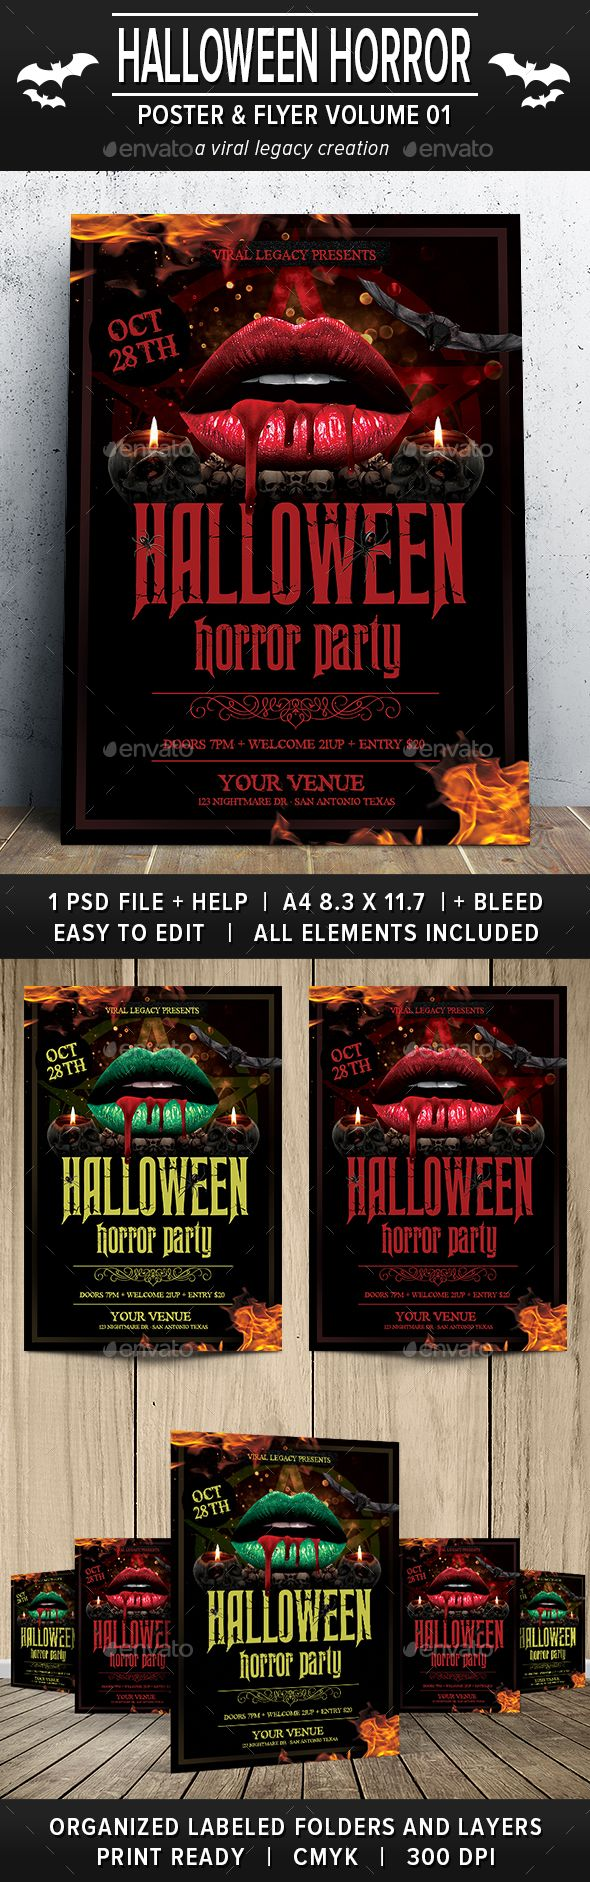 Halloween Horror Party Poster / Flyer V01 | Horror party, Party ...